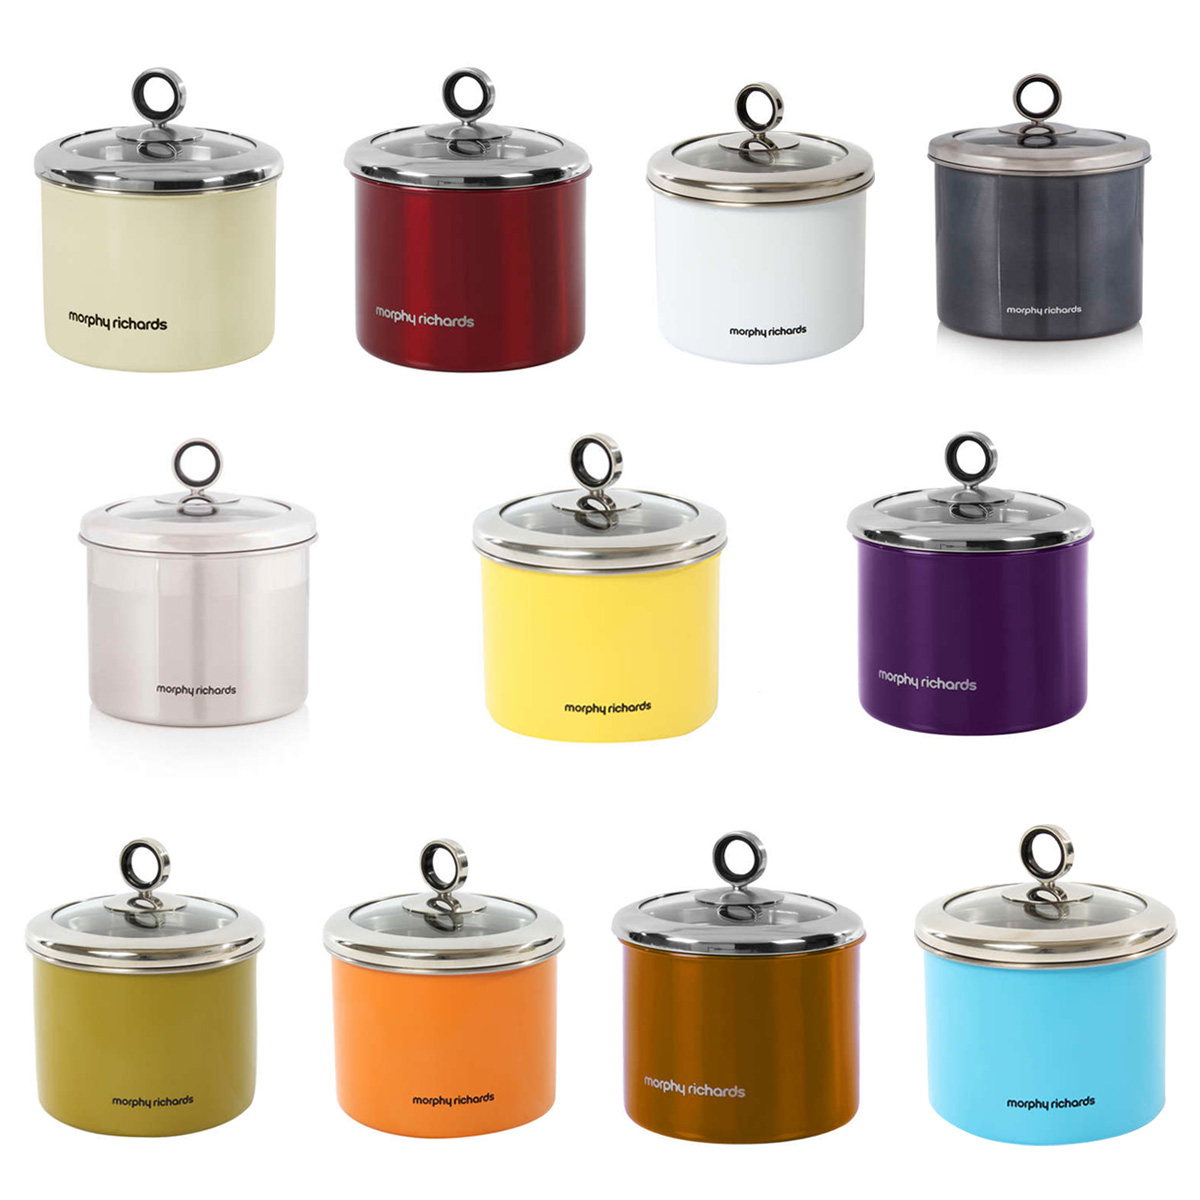 morphy richards small 1 4 litre stainless steel kitchen ribbed glass heart design lid kitchen storage canister jar